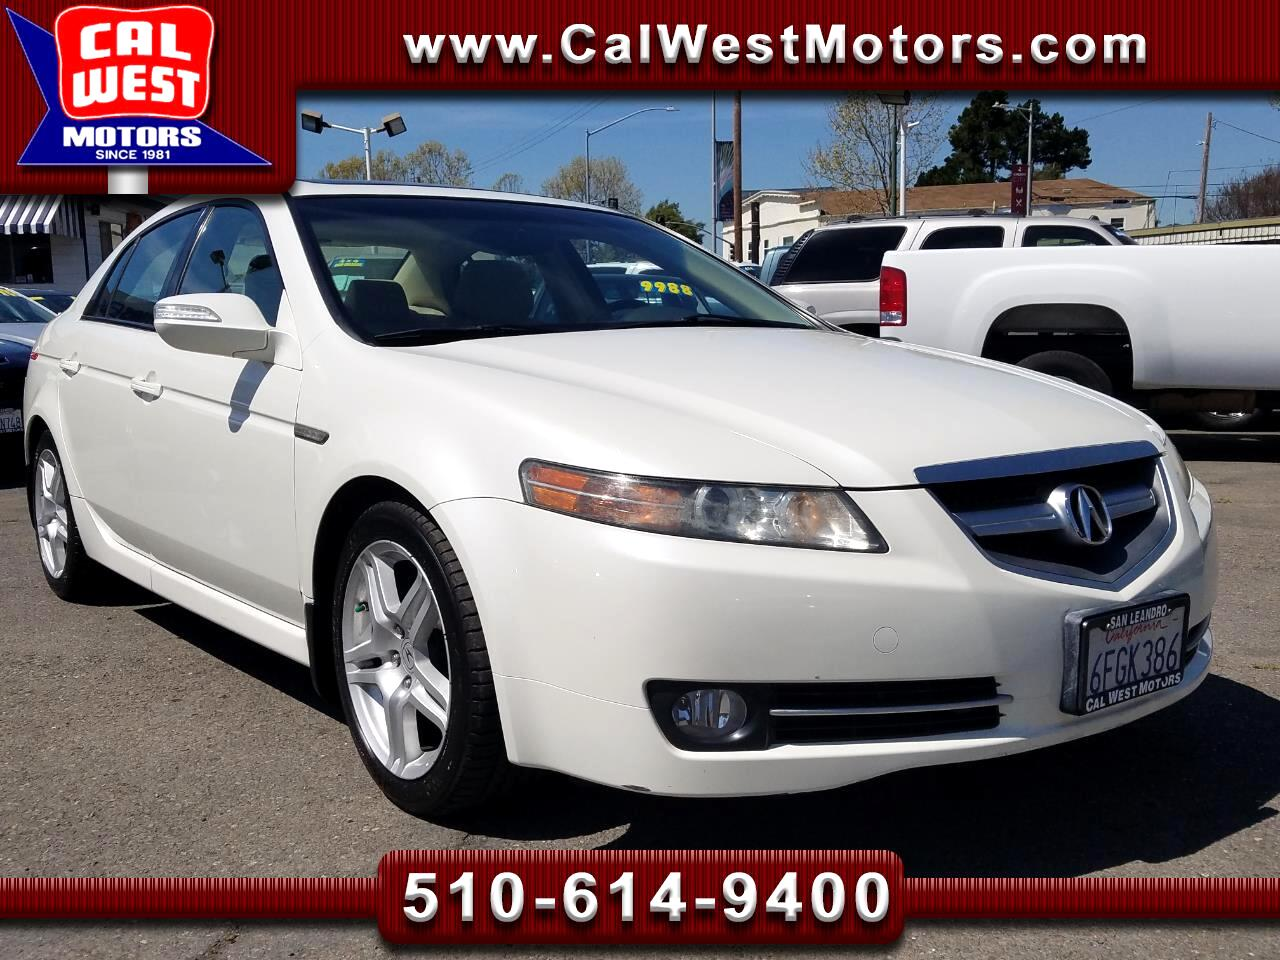 2008 Acura TL Premium Sedan NAV BUCam Blu2th 1Owner LowMiles